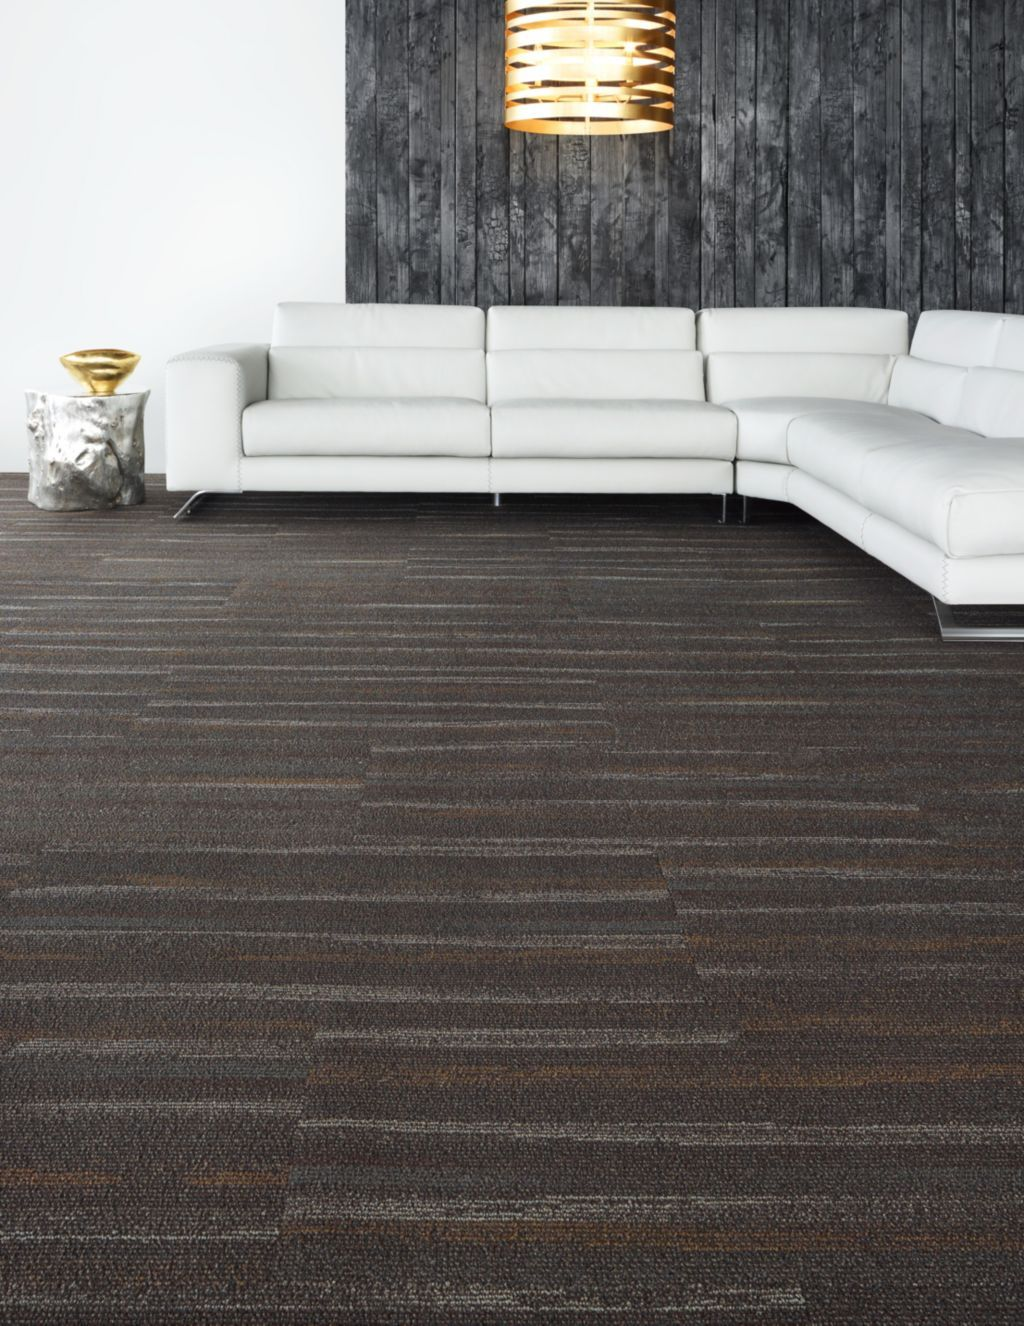 Could have dark carpet will show less dirt and then white view the commercial carpet style ignite tile from shaw contract view the carpet in a room scene order samples see specifications and more baanklon Choice Image